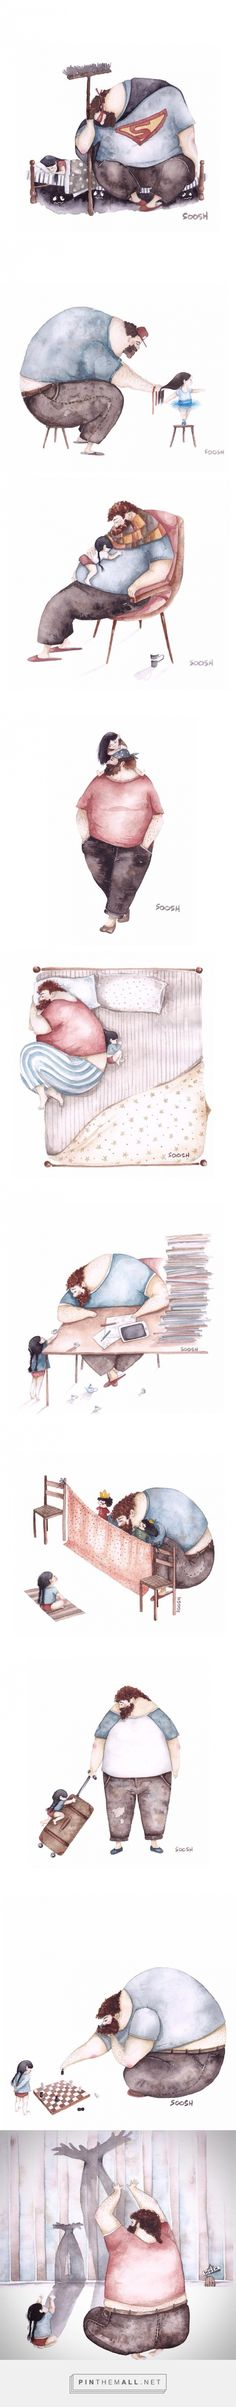 Illustrations about The relationship between Do-it -all Dads And Their Little Girls - Snezhana Soosh, a young painter, has drew beautiful watercolor paintings Children's Book Illustration, Watercolor Illustration, Watercolor Paintings, Art Graphique, Art Plastique, Illustrators, Art Drawings, Little Girls, Sketches